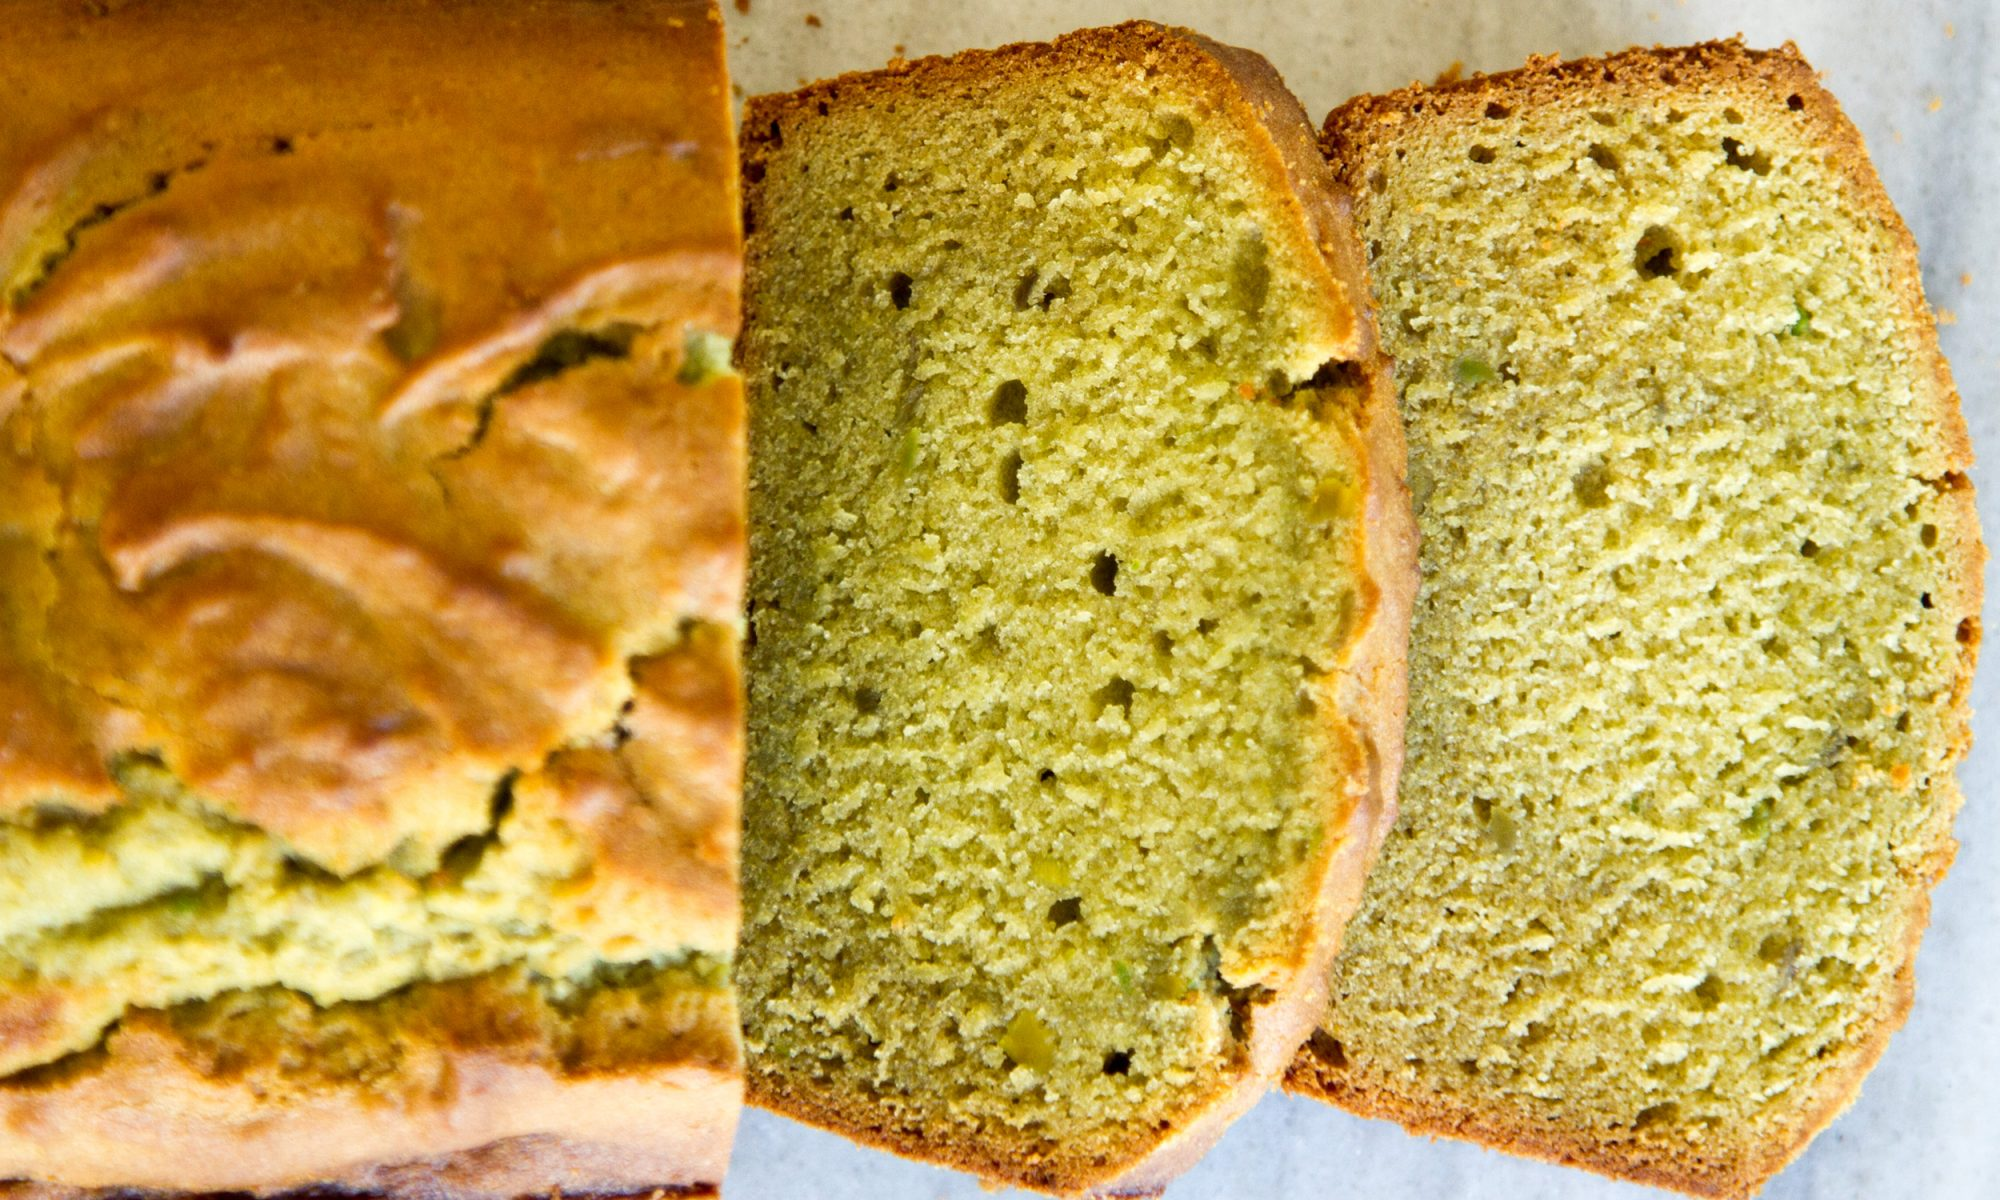 Bake Avocado Into Your Next Loaf of Bread